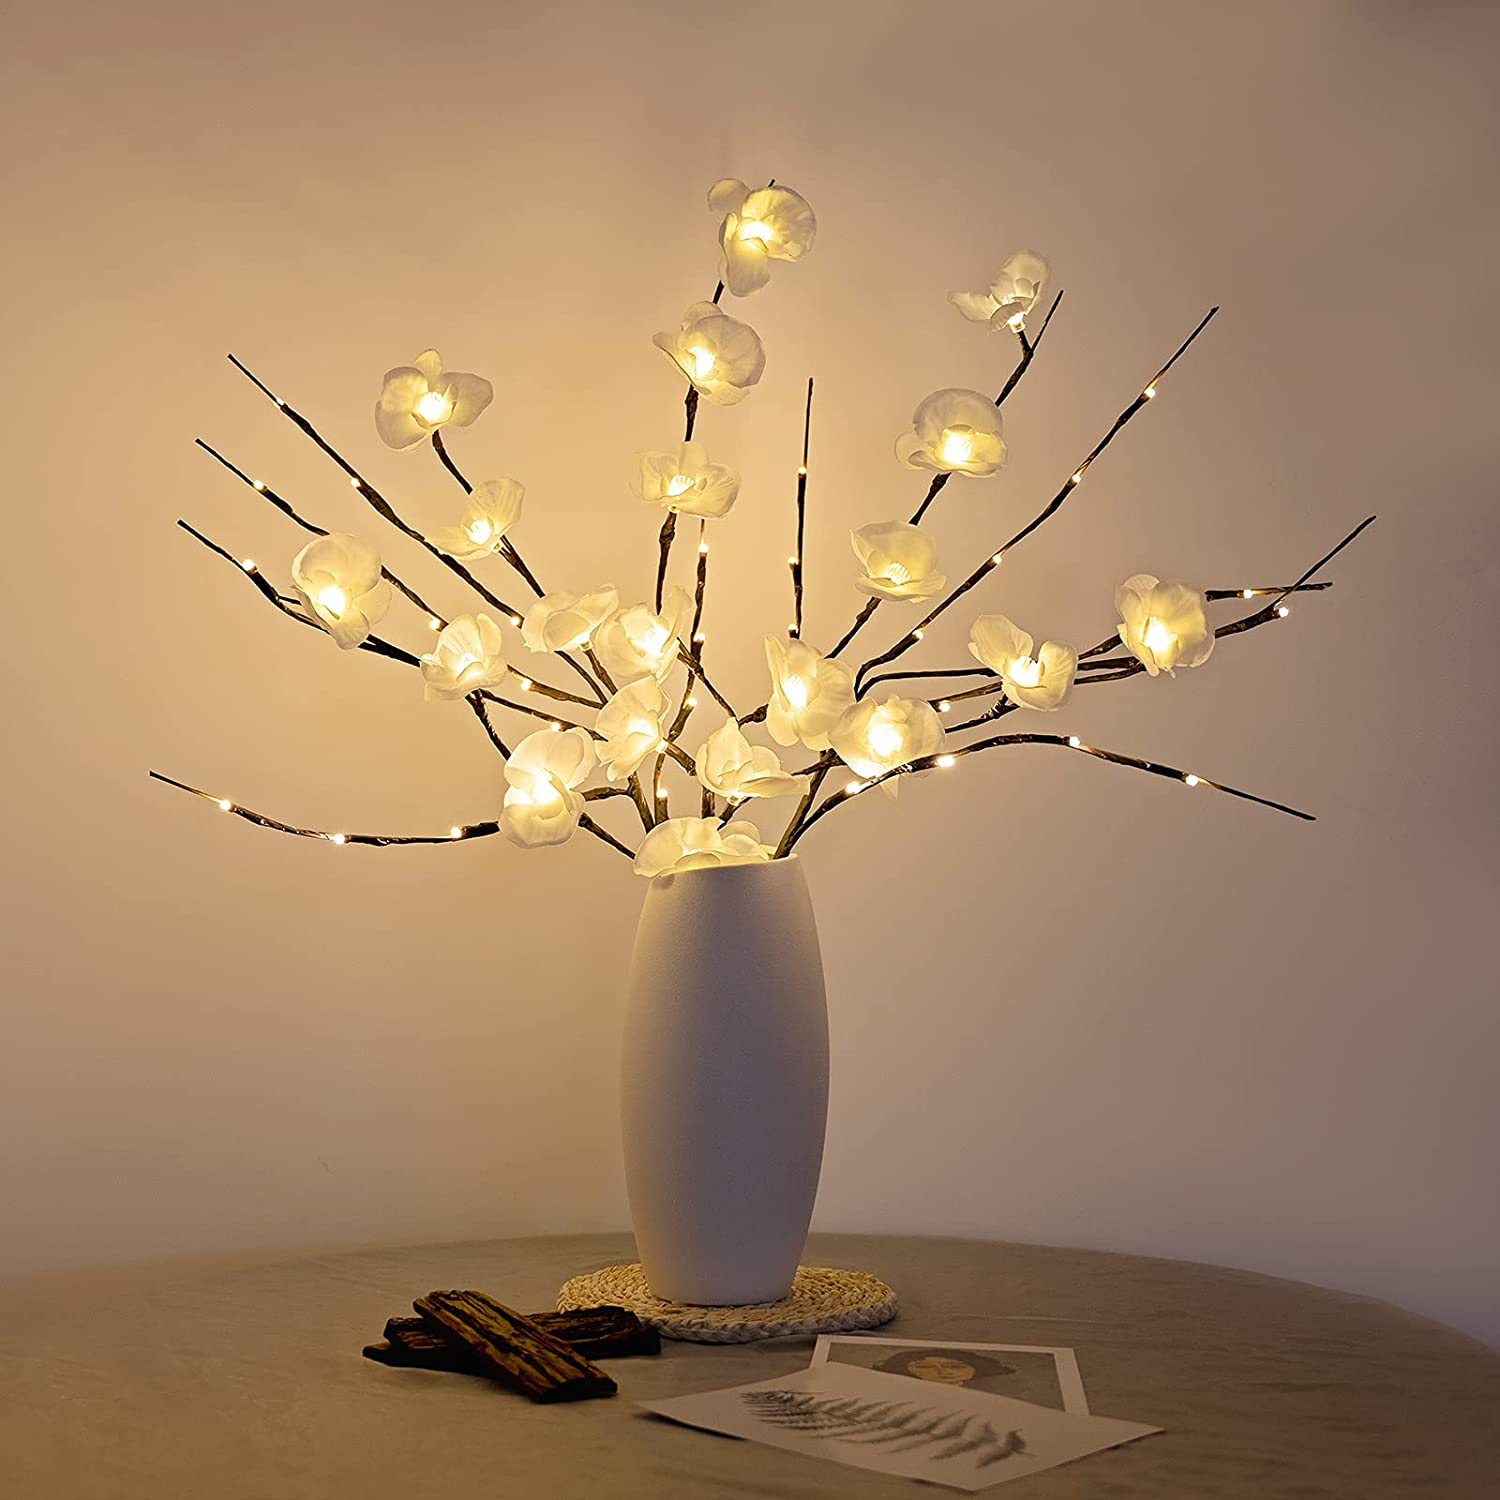 Home Decorations for Living Room, Table Lamp Battery Operated, Esova Lighted Branches and Flowers 3 Pack 60 LEDs, Lights for Bedroom Decor (Vase is not Included)